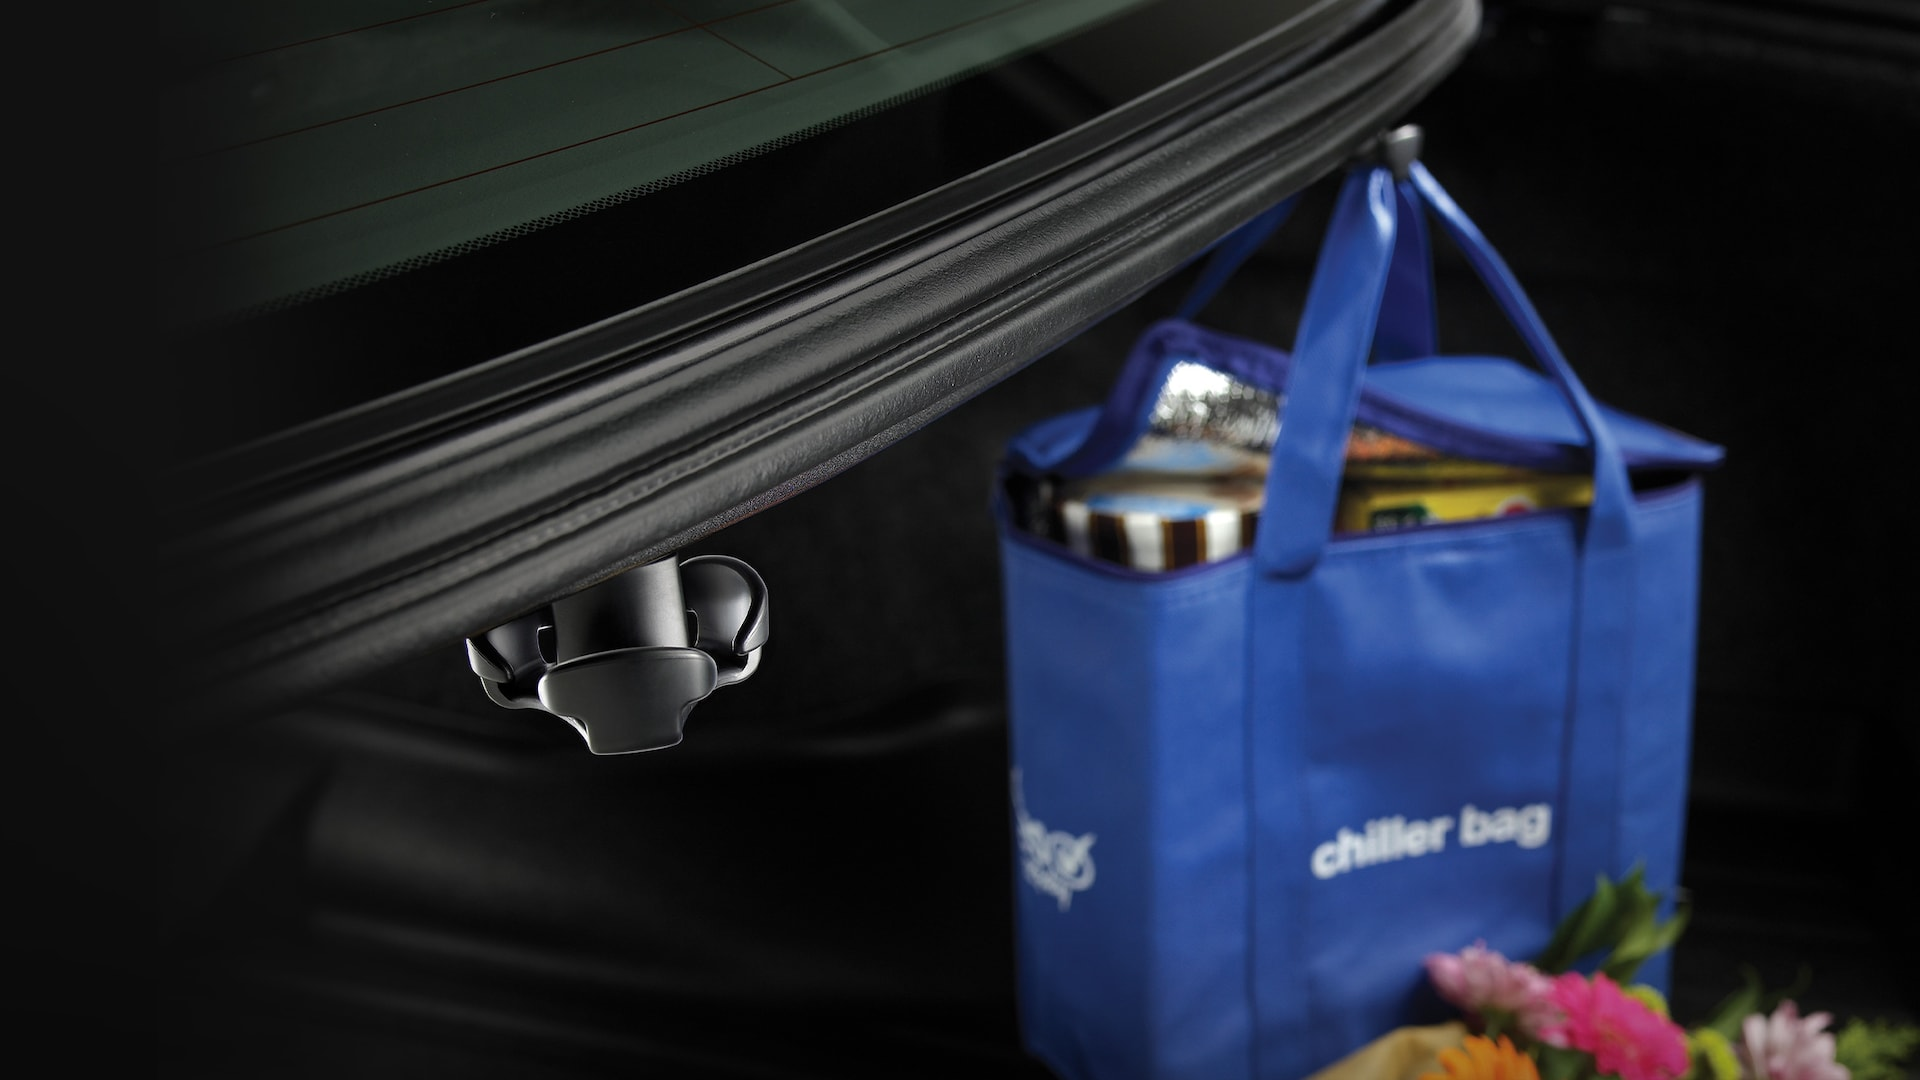 Detail of accessory cargo hook holding groceries in the 2021 Honda Accord.